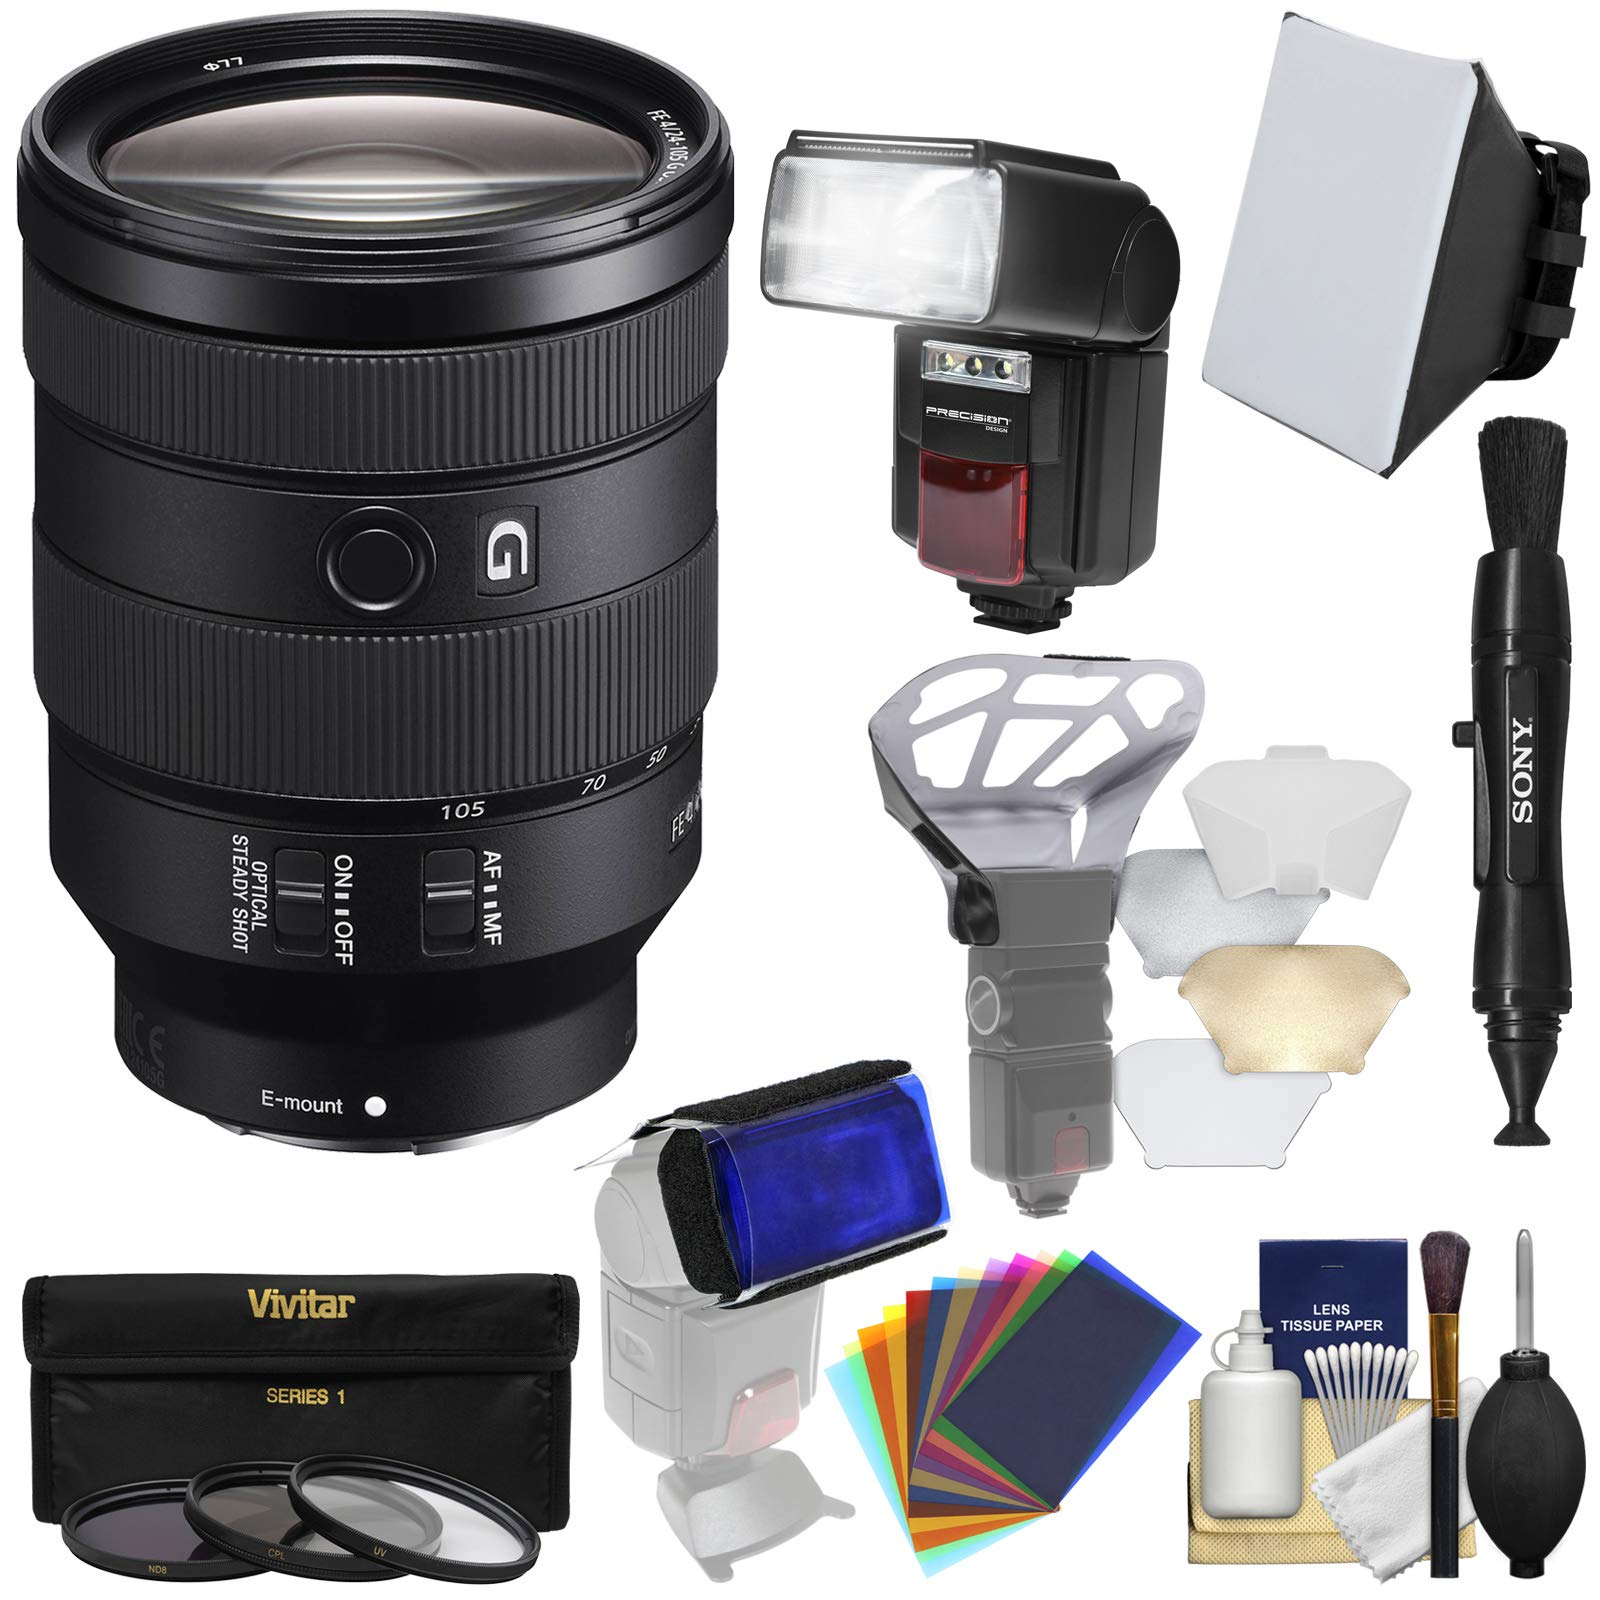 Sony Alpha E-Mount FE 24-105mm f/4.0 G OSS Zoom Lens with 3 UV/CPL/ND8 Filters + Flash & LED Video Light + Diffusers + Kit by Sony (Image #1)